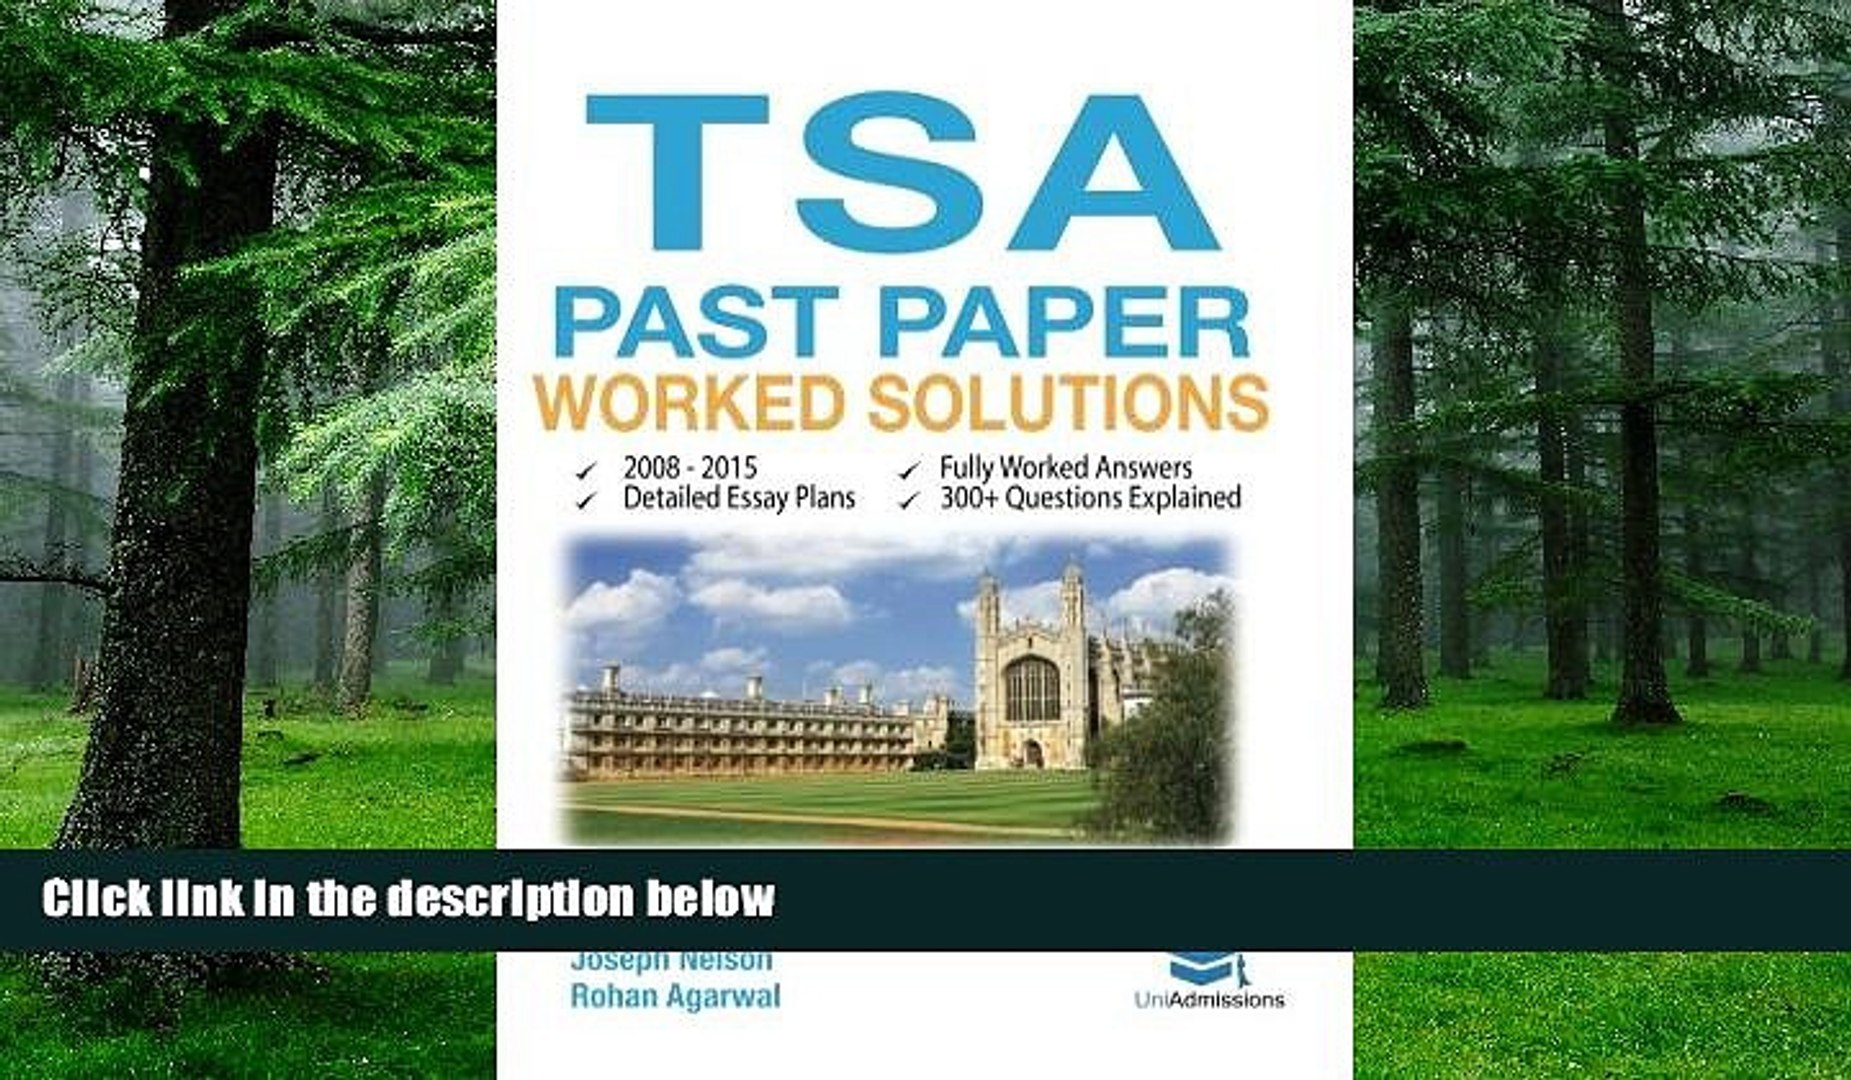 Download Joseph Nelson TSA Past Paper Worked Solutions: 2008 - 2015, Fully  worked answers to 300+